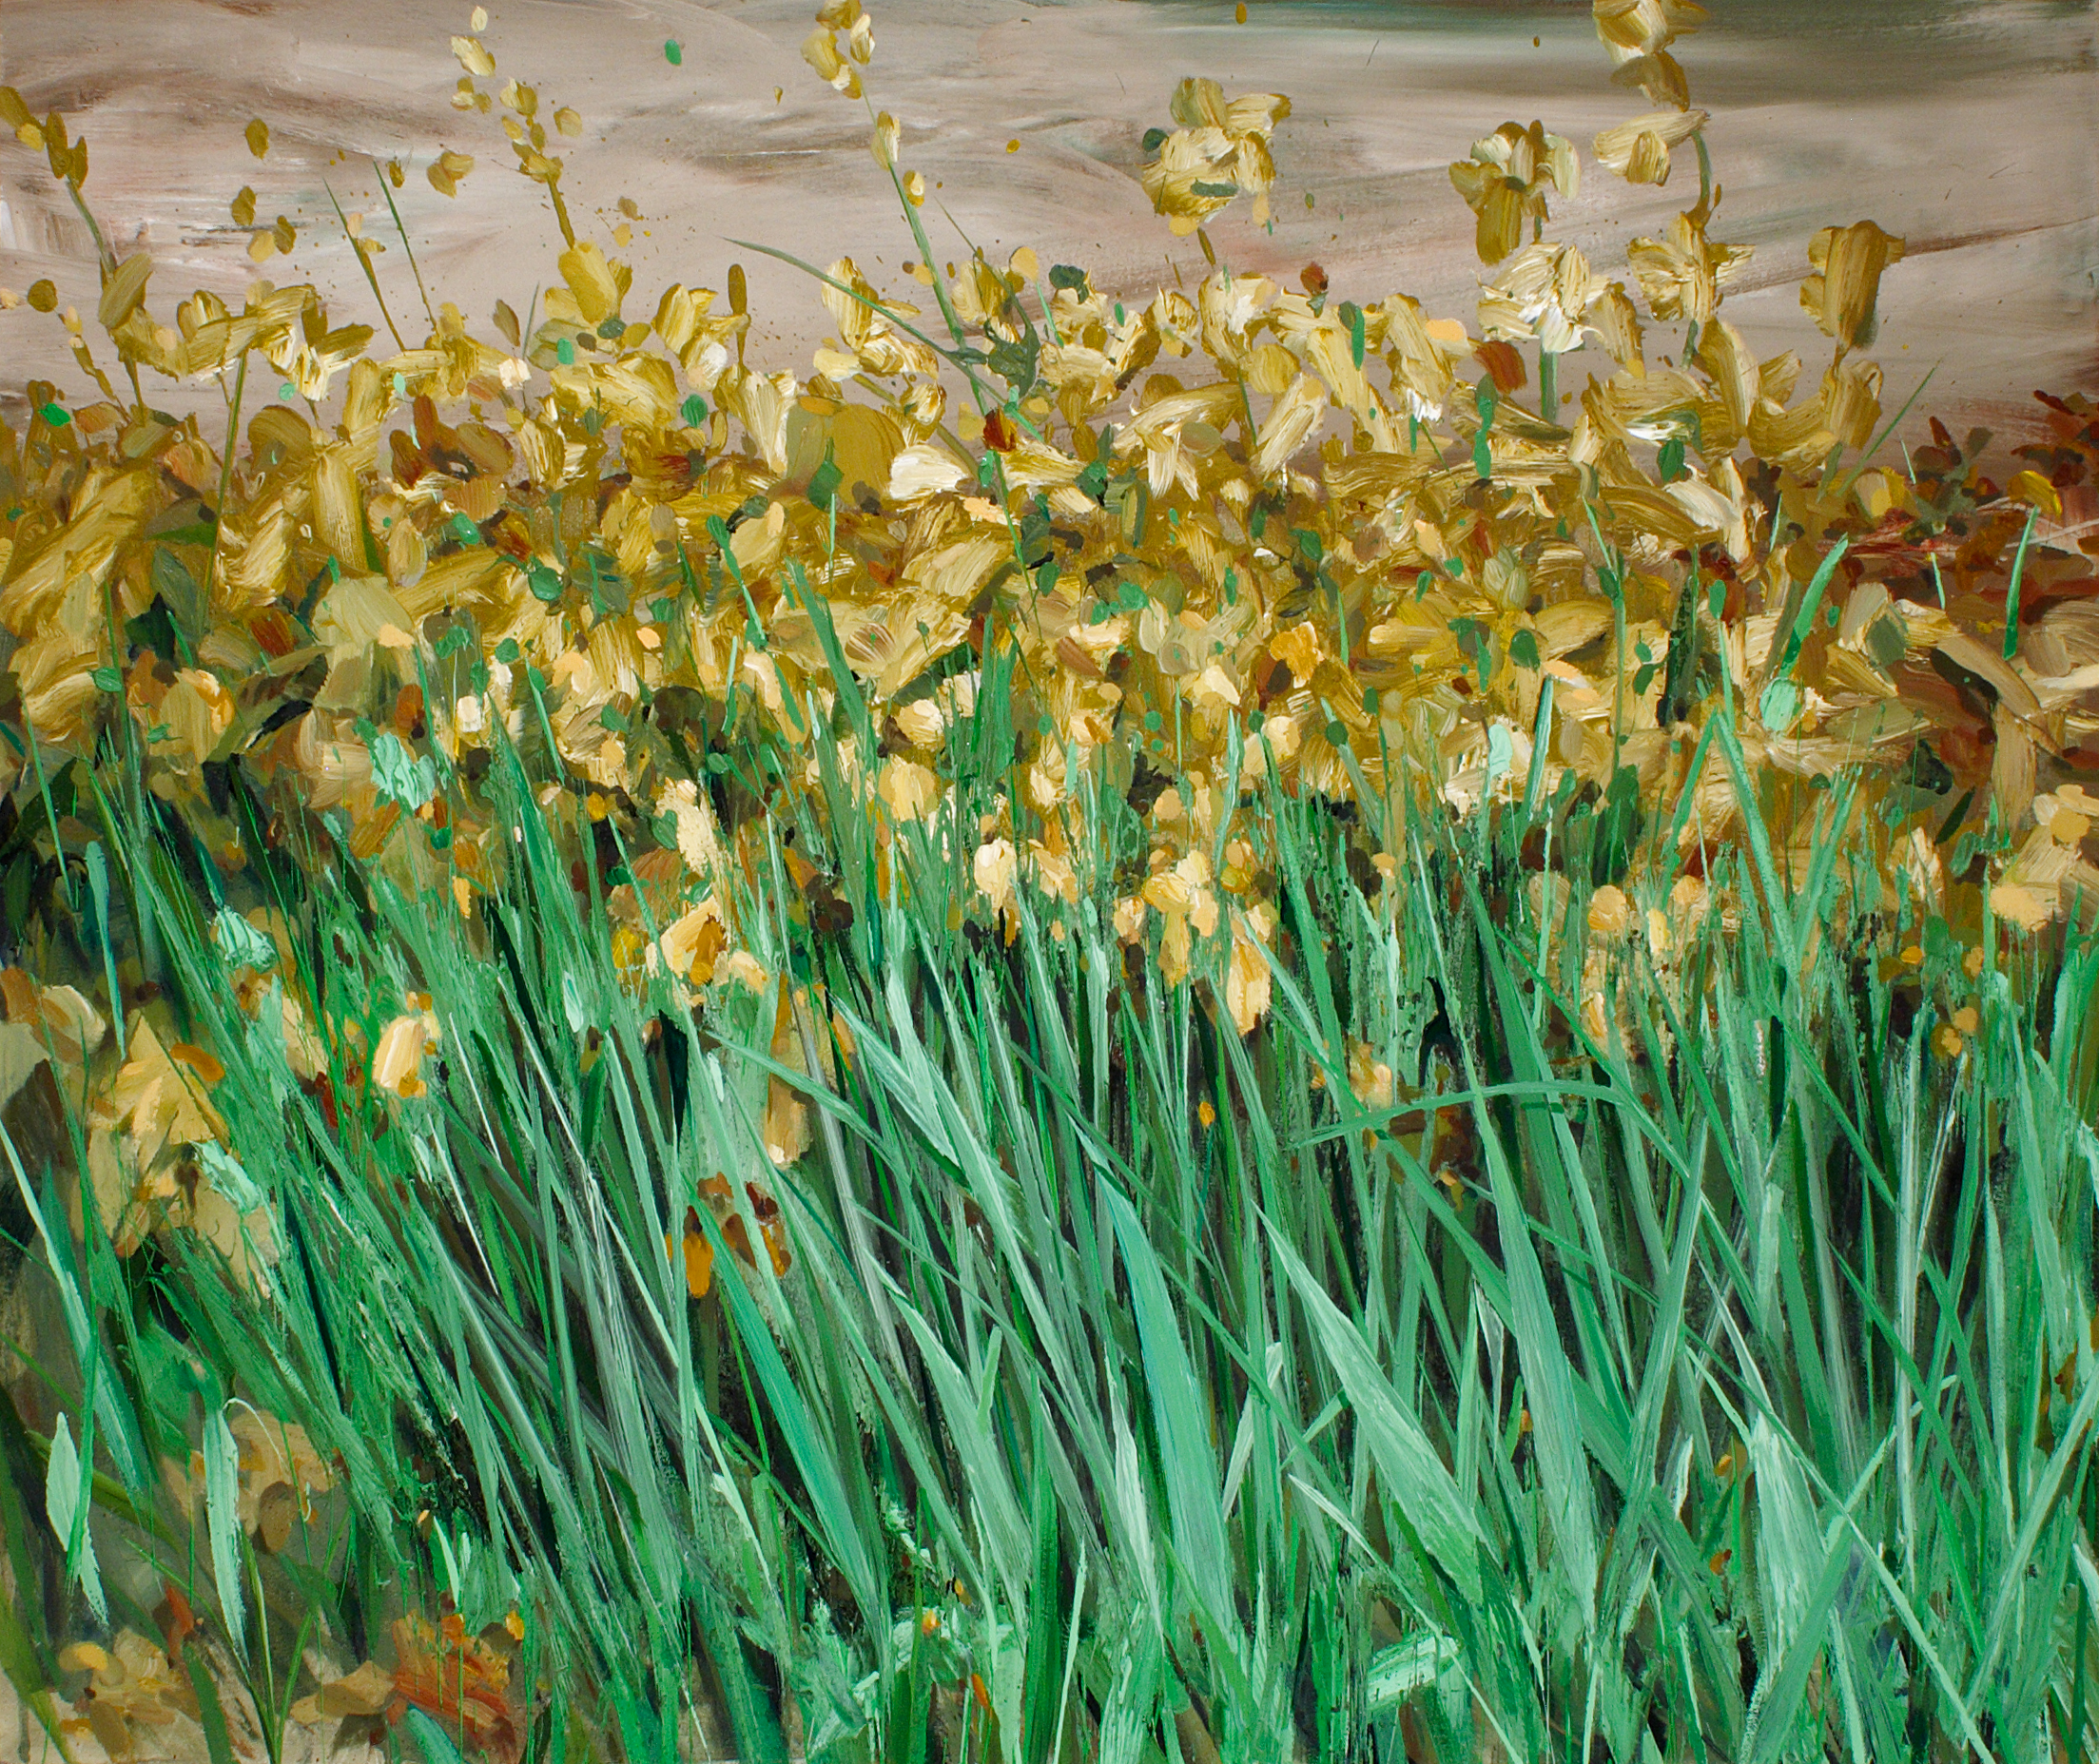 Field of Golden Irises